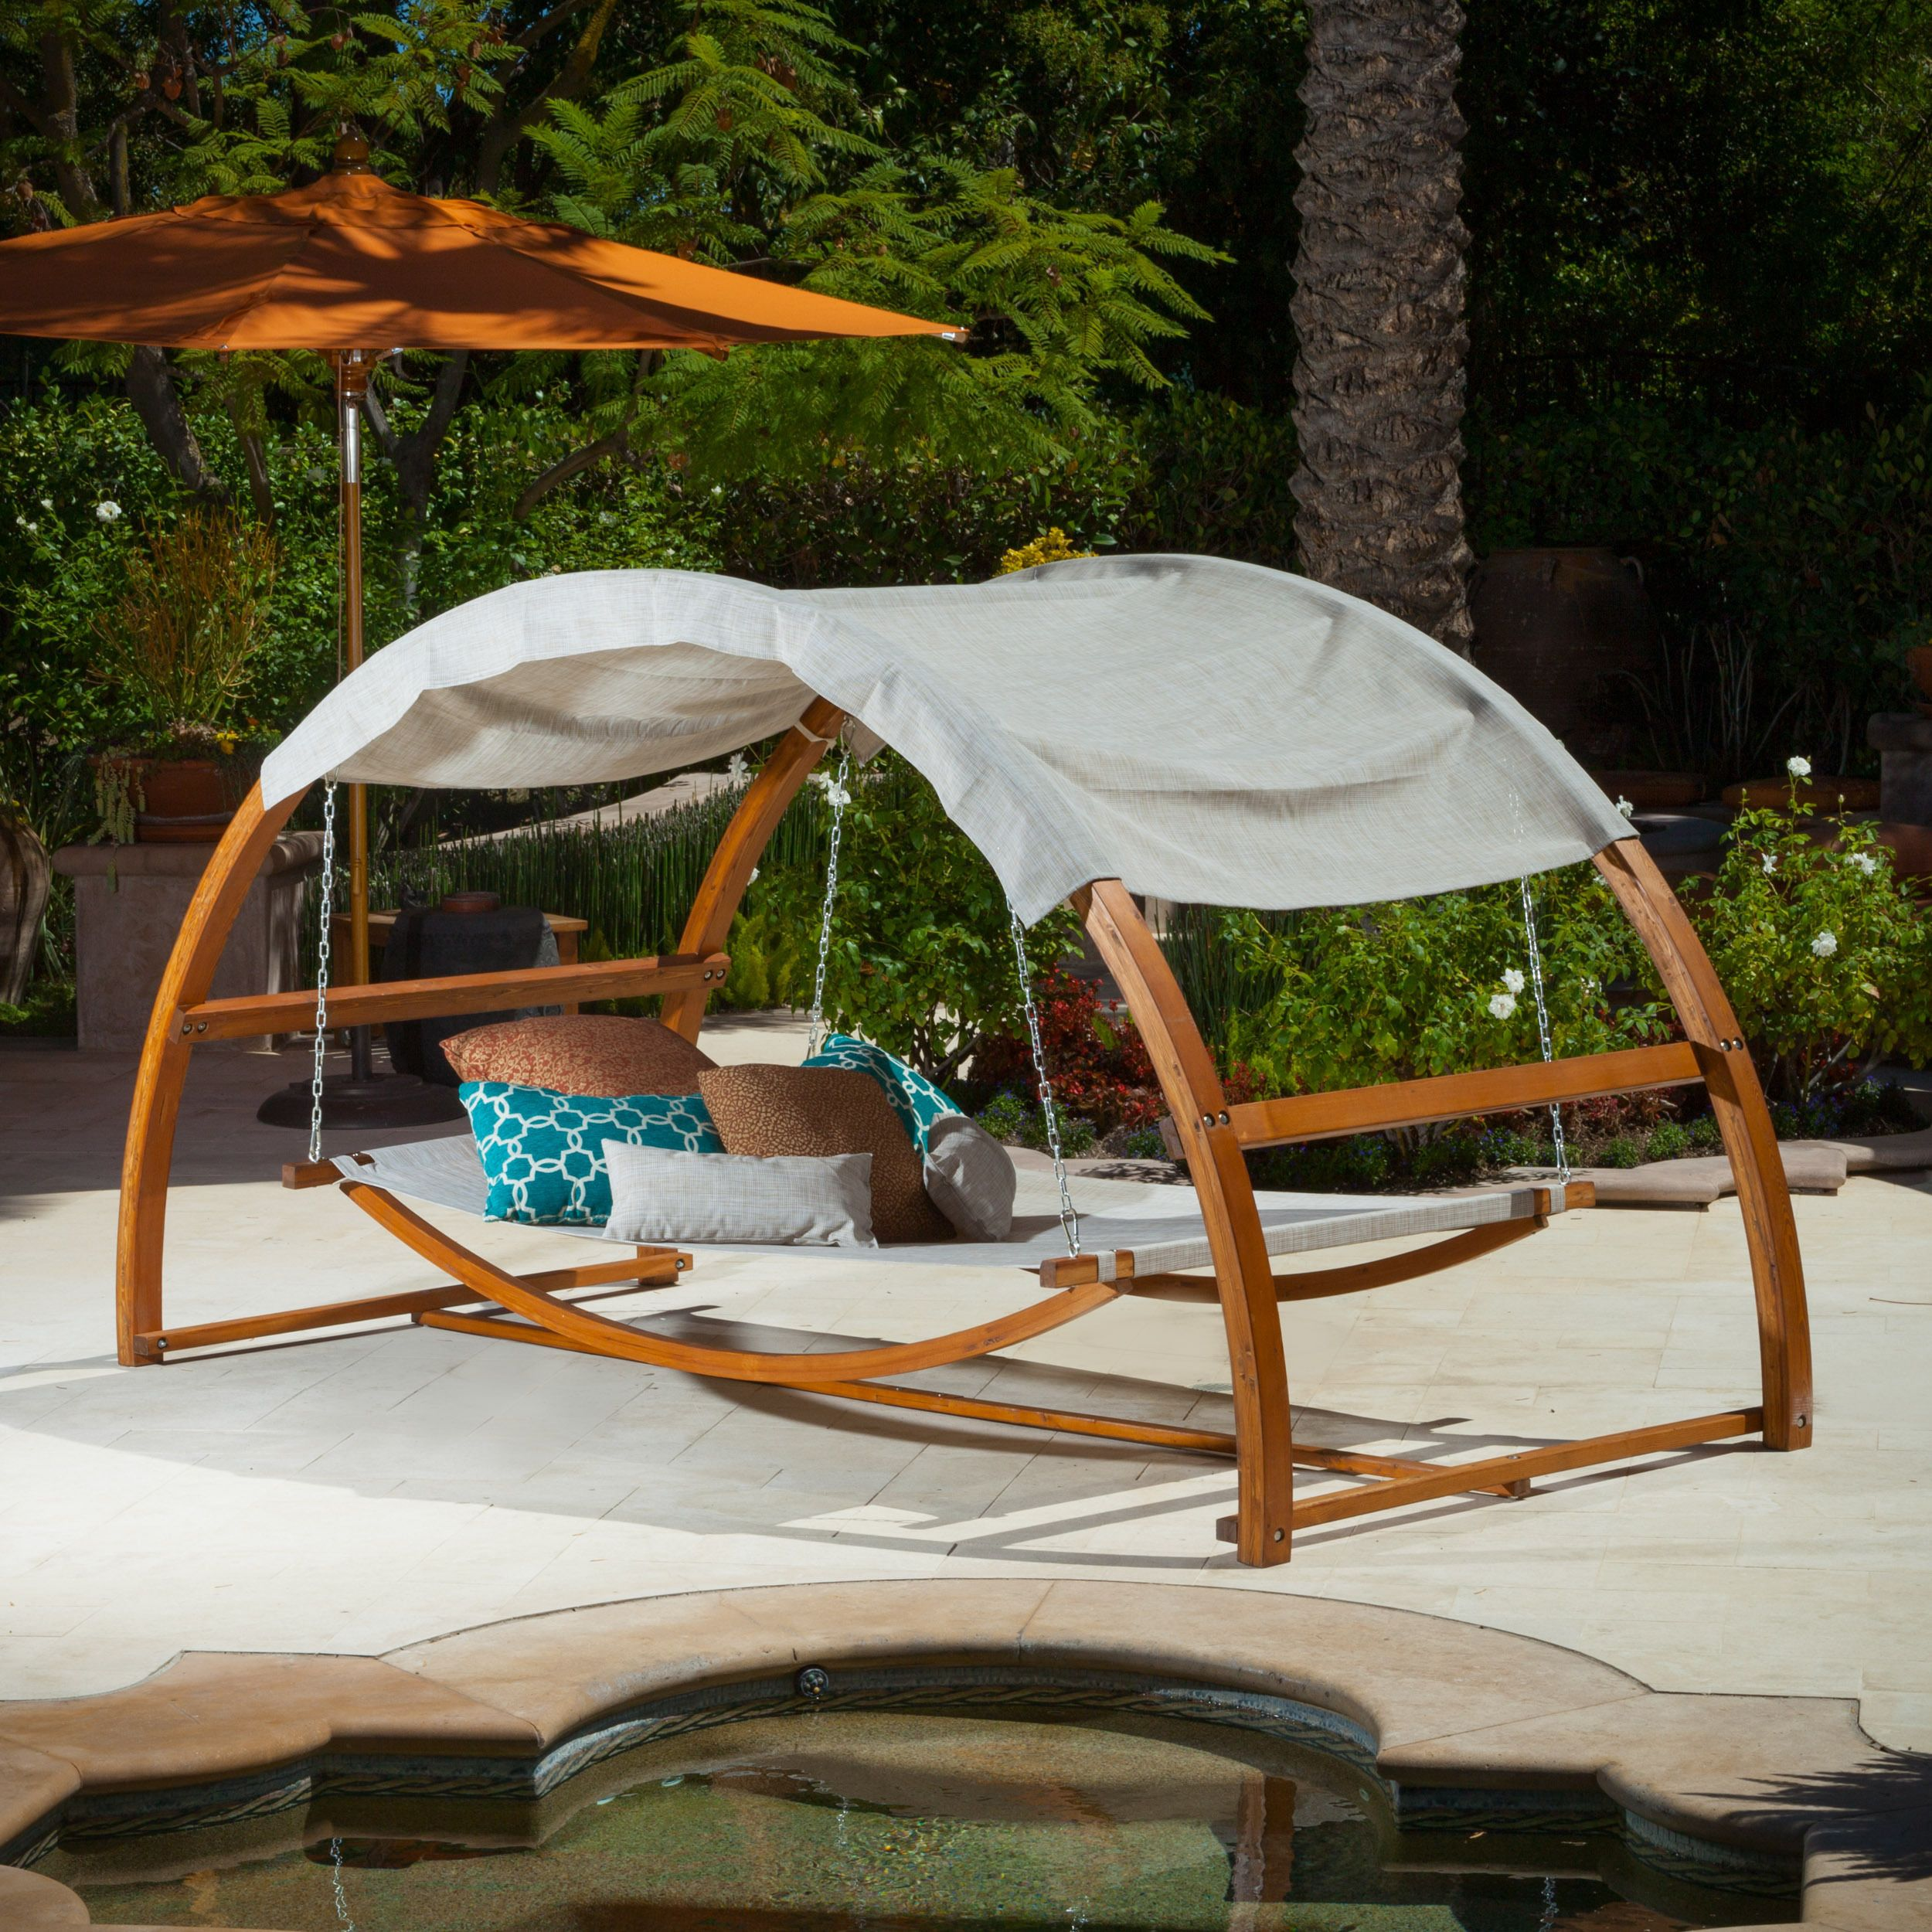 The Tonga hanging swing bed with canopy is a perfect relaxation getaway and can be as & The Tonga hanging swing bed with canopy is a perfect relaxation ...